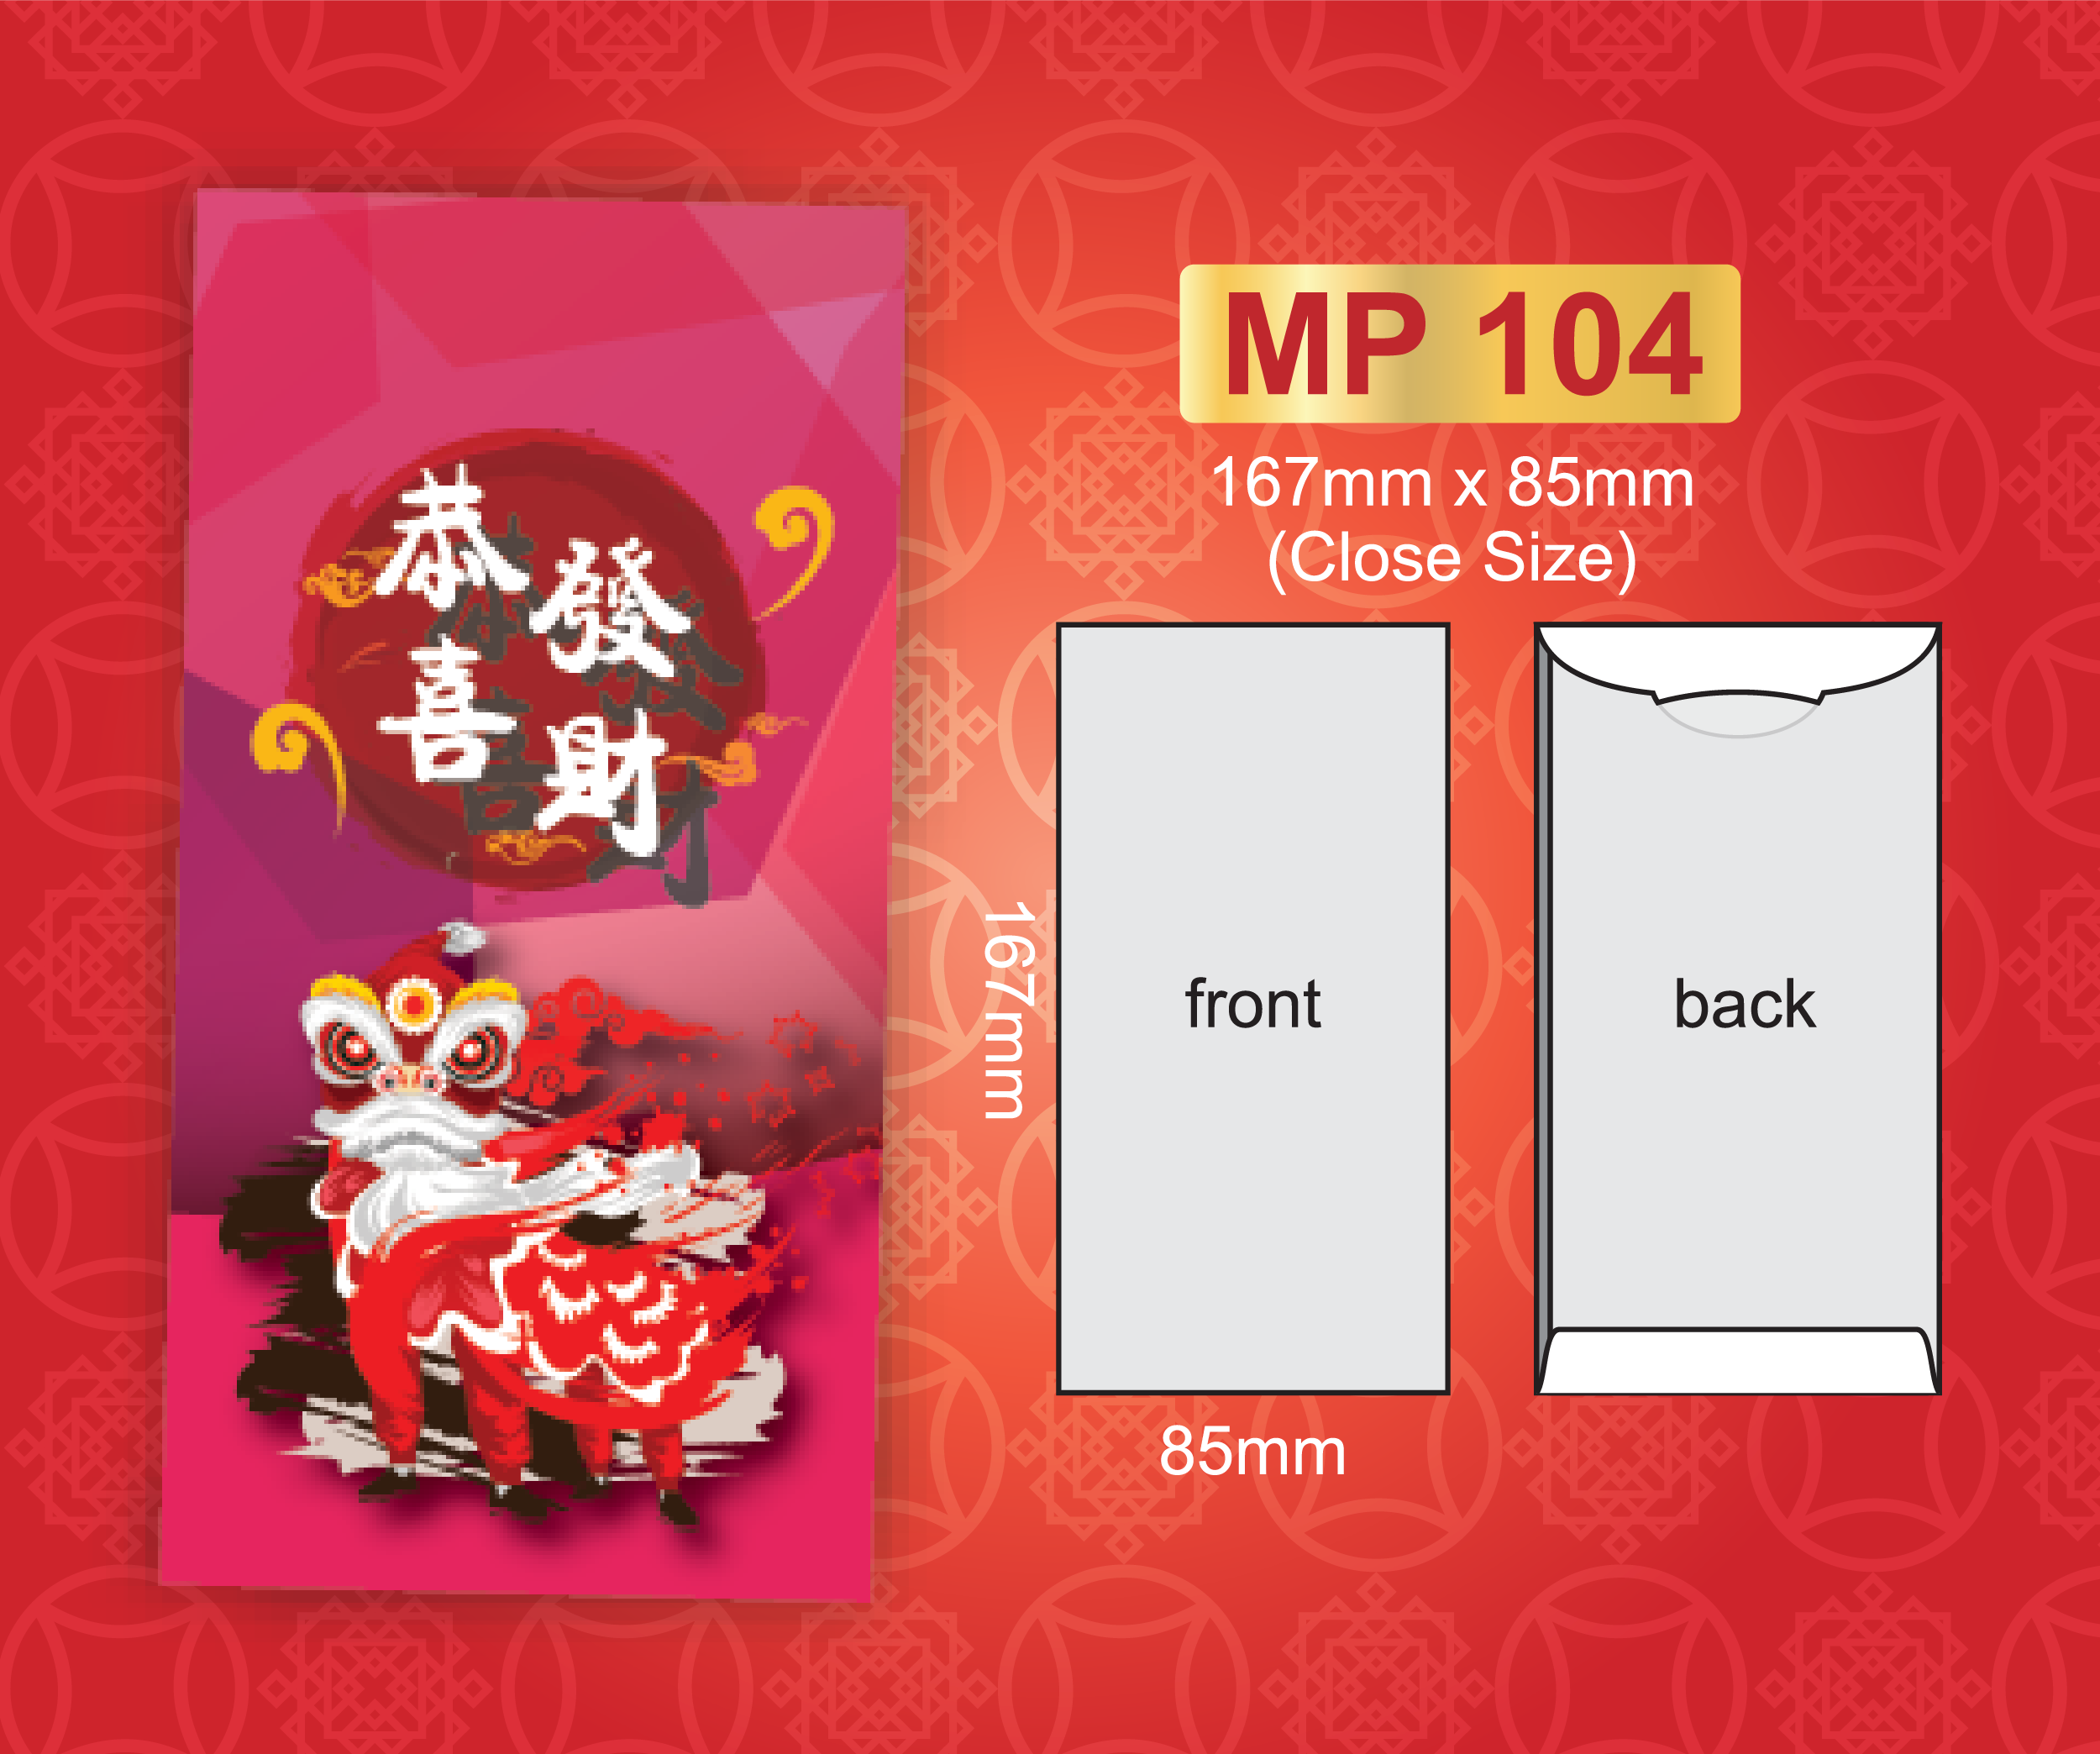 money packet printing Money Packet 130gsm Gloss Art Paper Money Packet Guide Portrait MP104